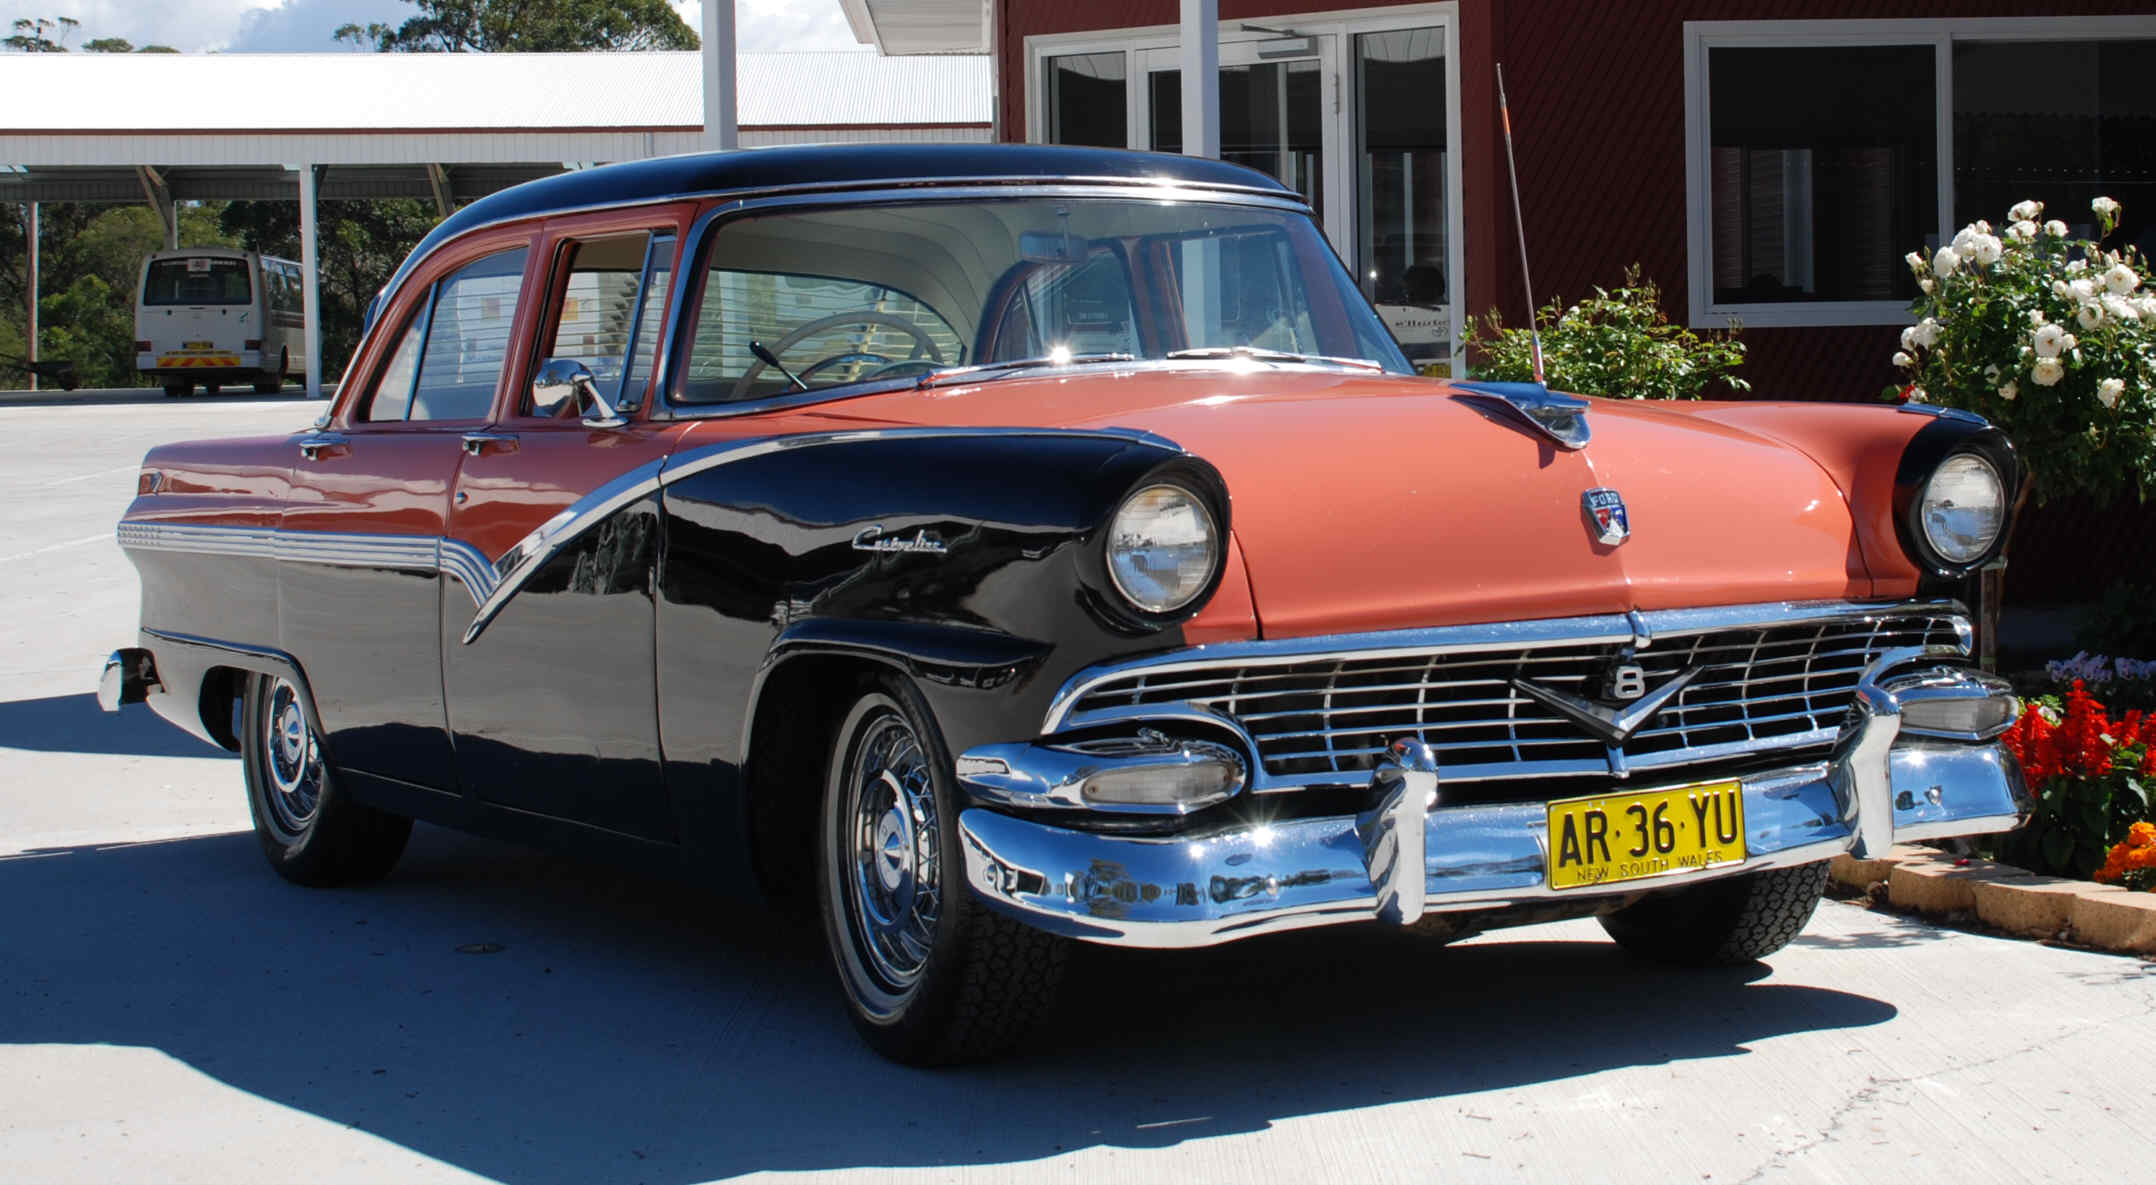 Ford customline 1957 photo - 2